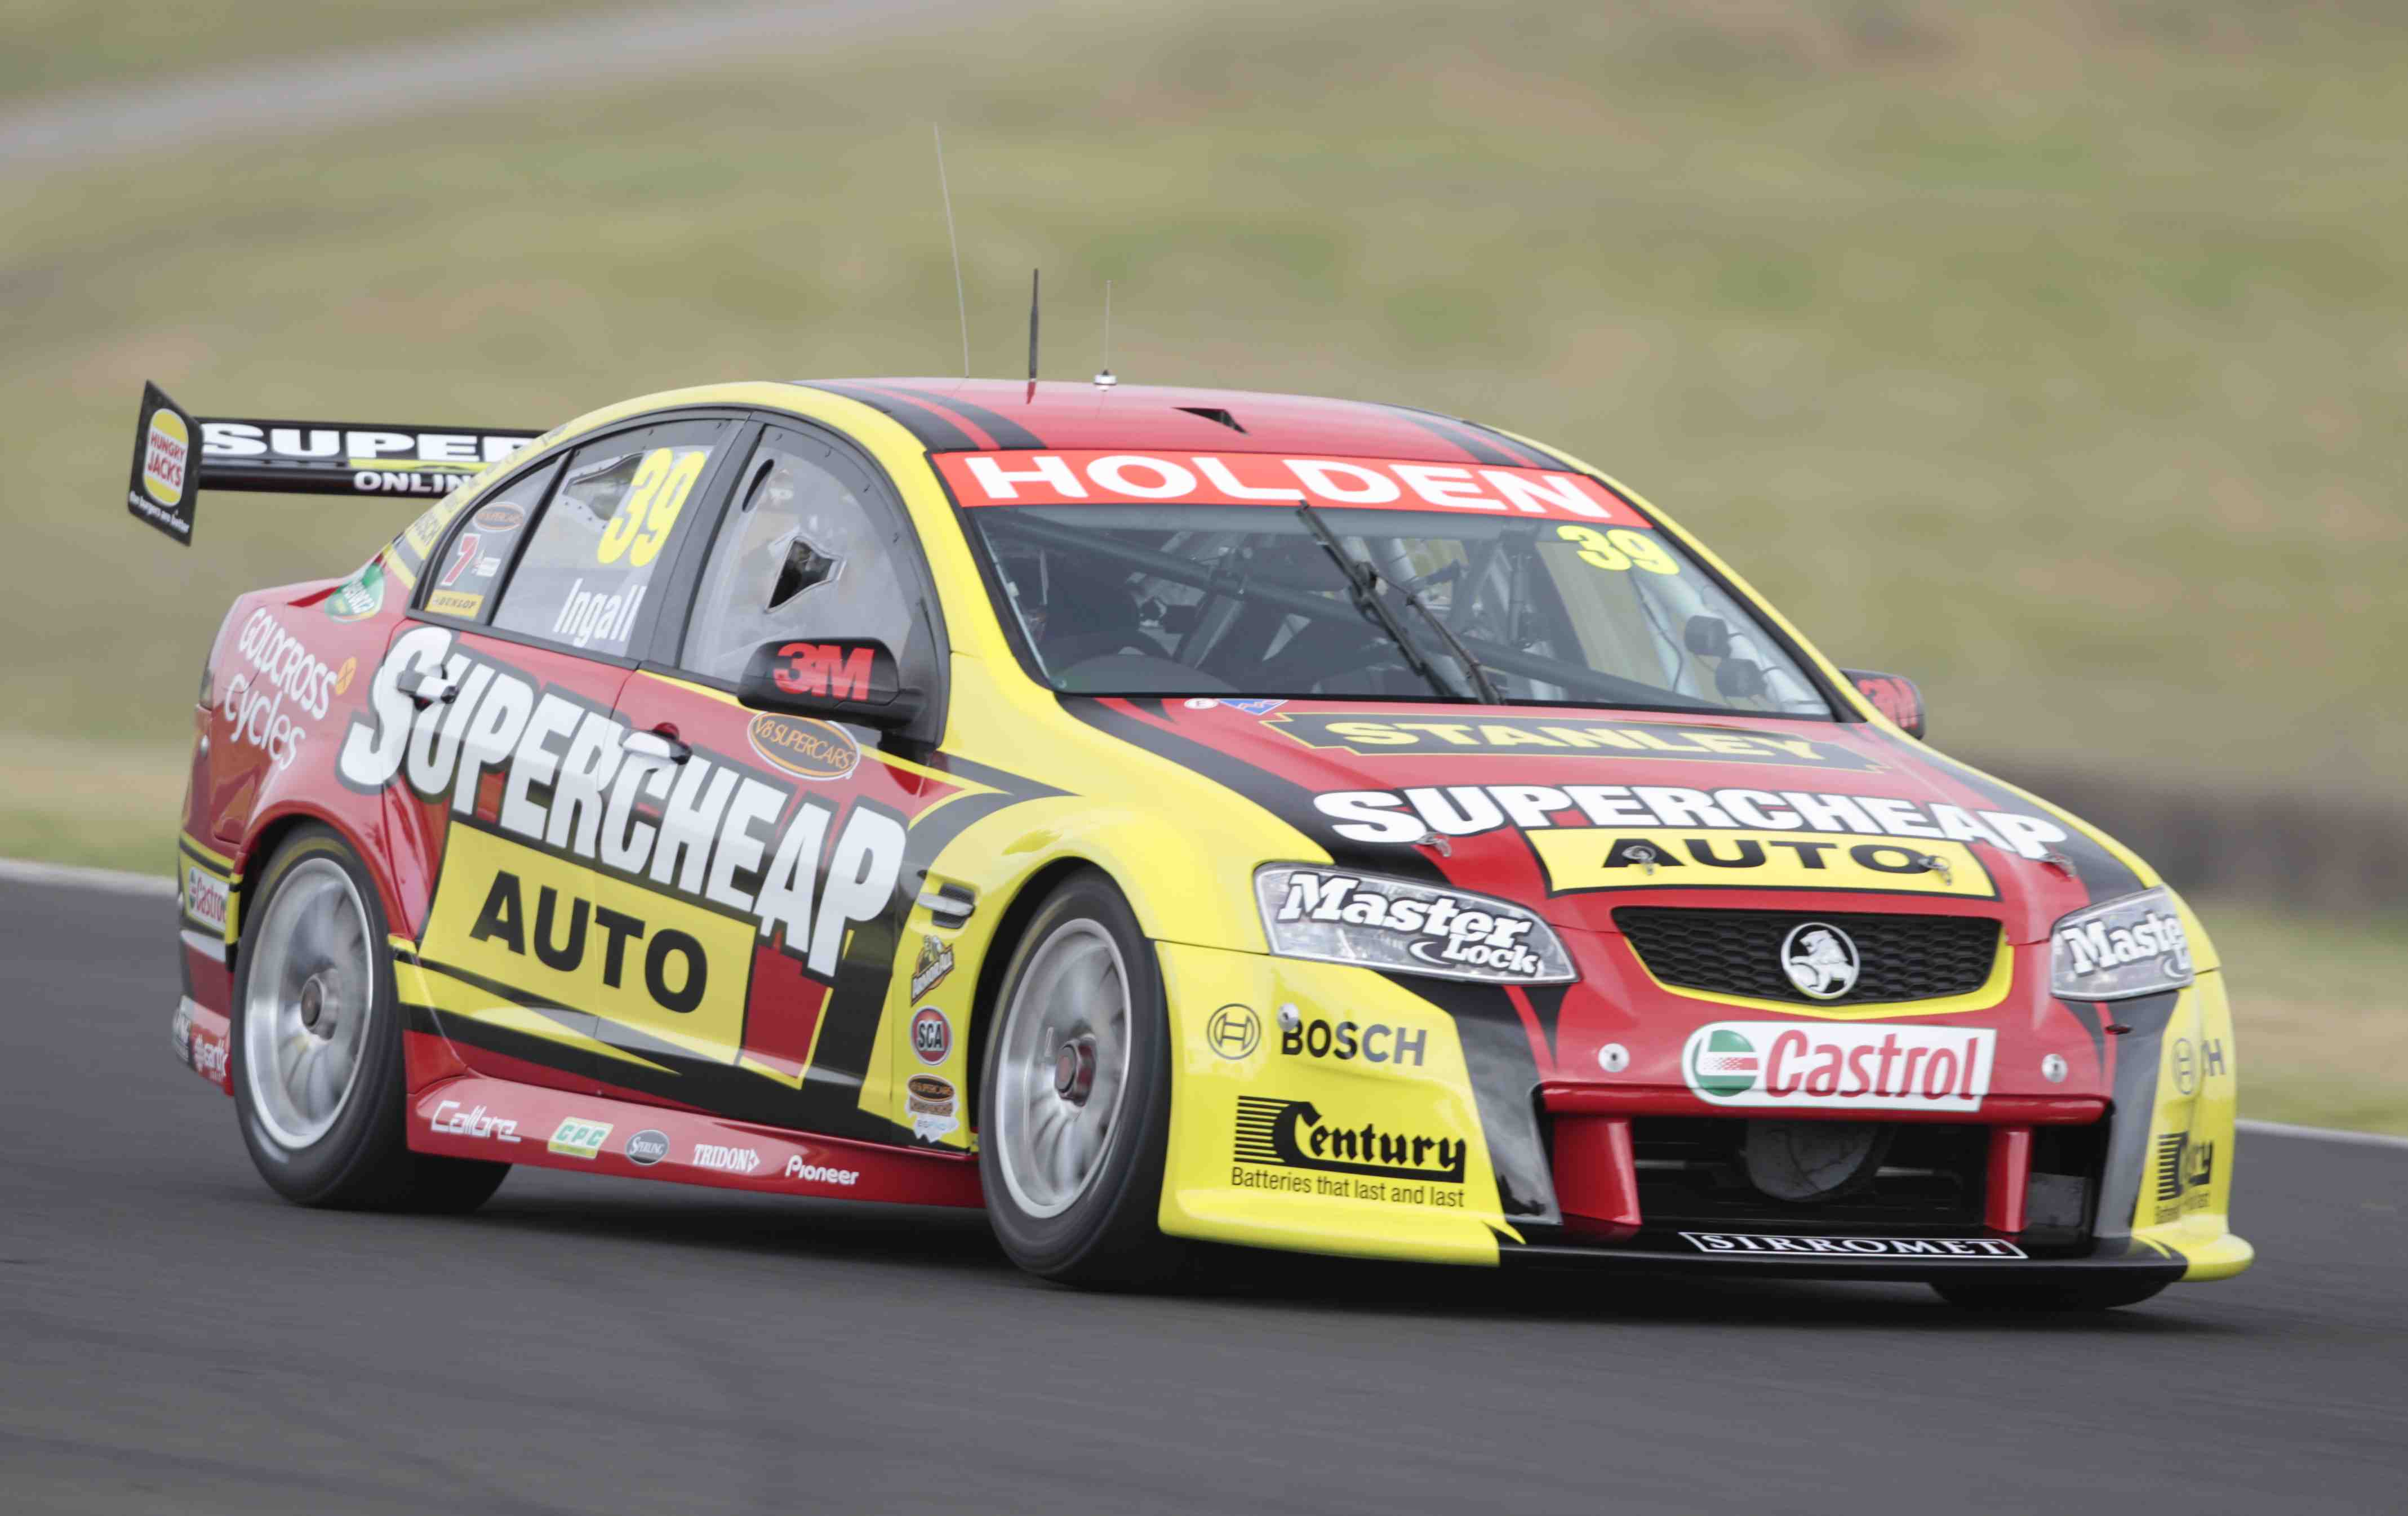 Perkins gets early testing laps ahead of enduros